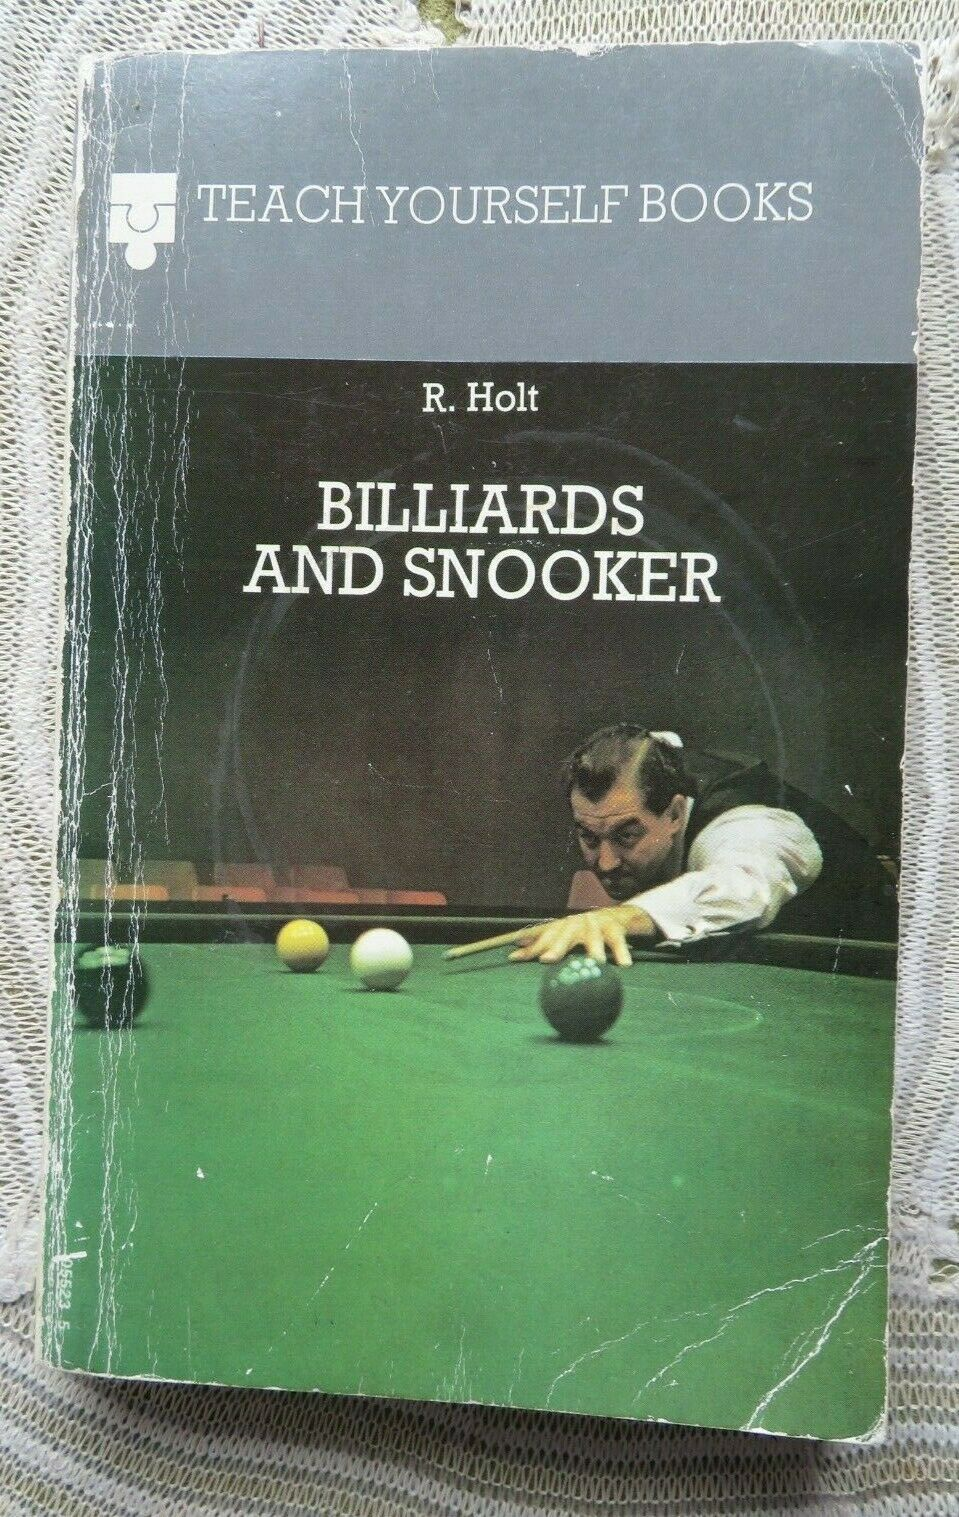 'Teach Yourself Books : Billiards and Snooker' by R.Holt